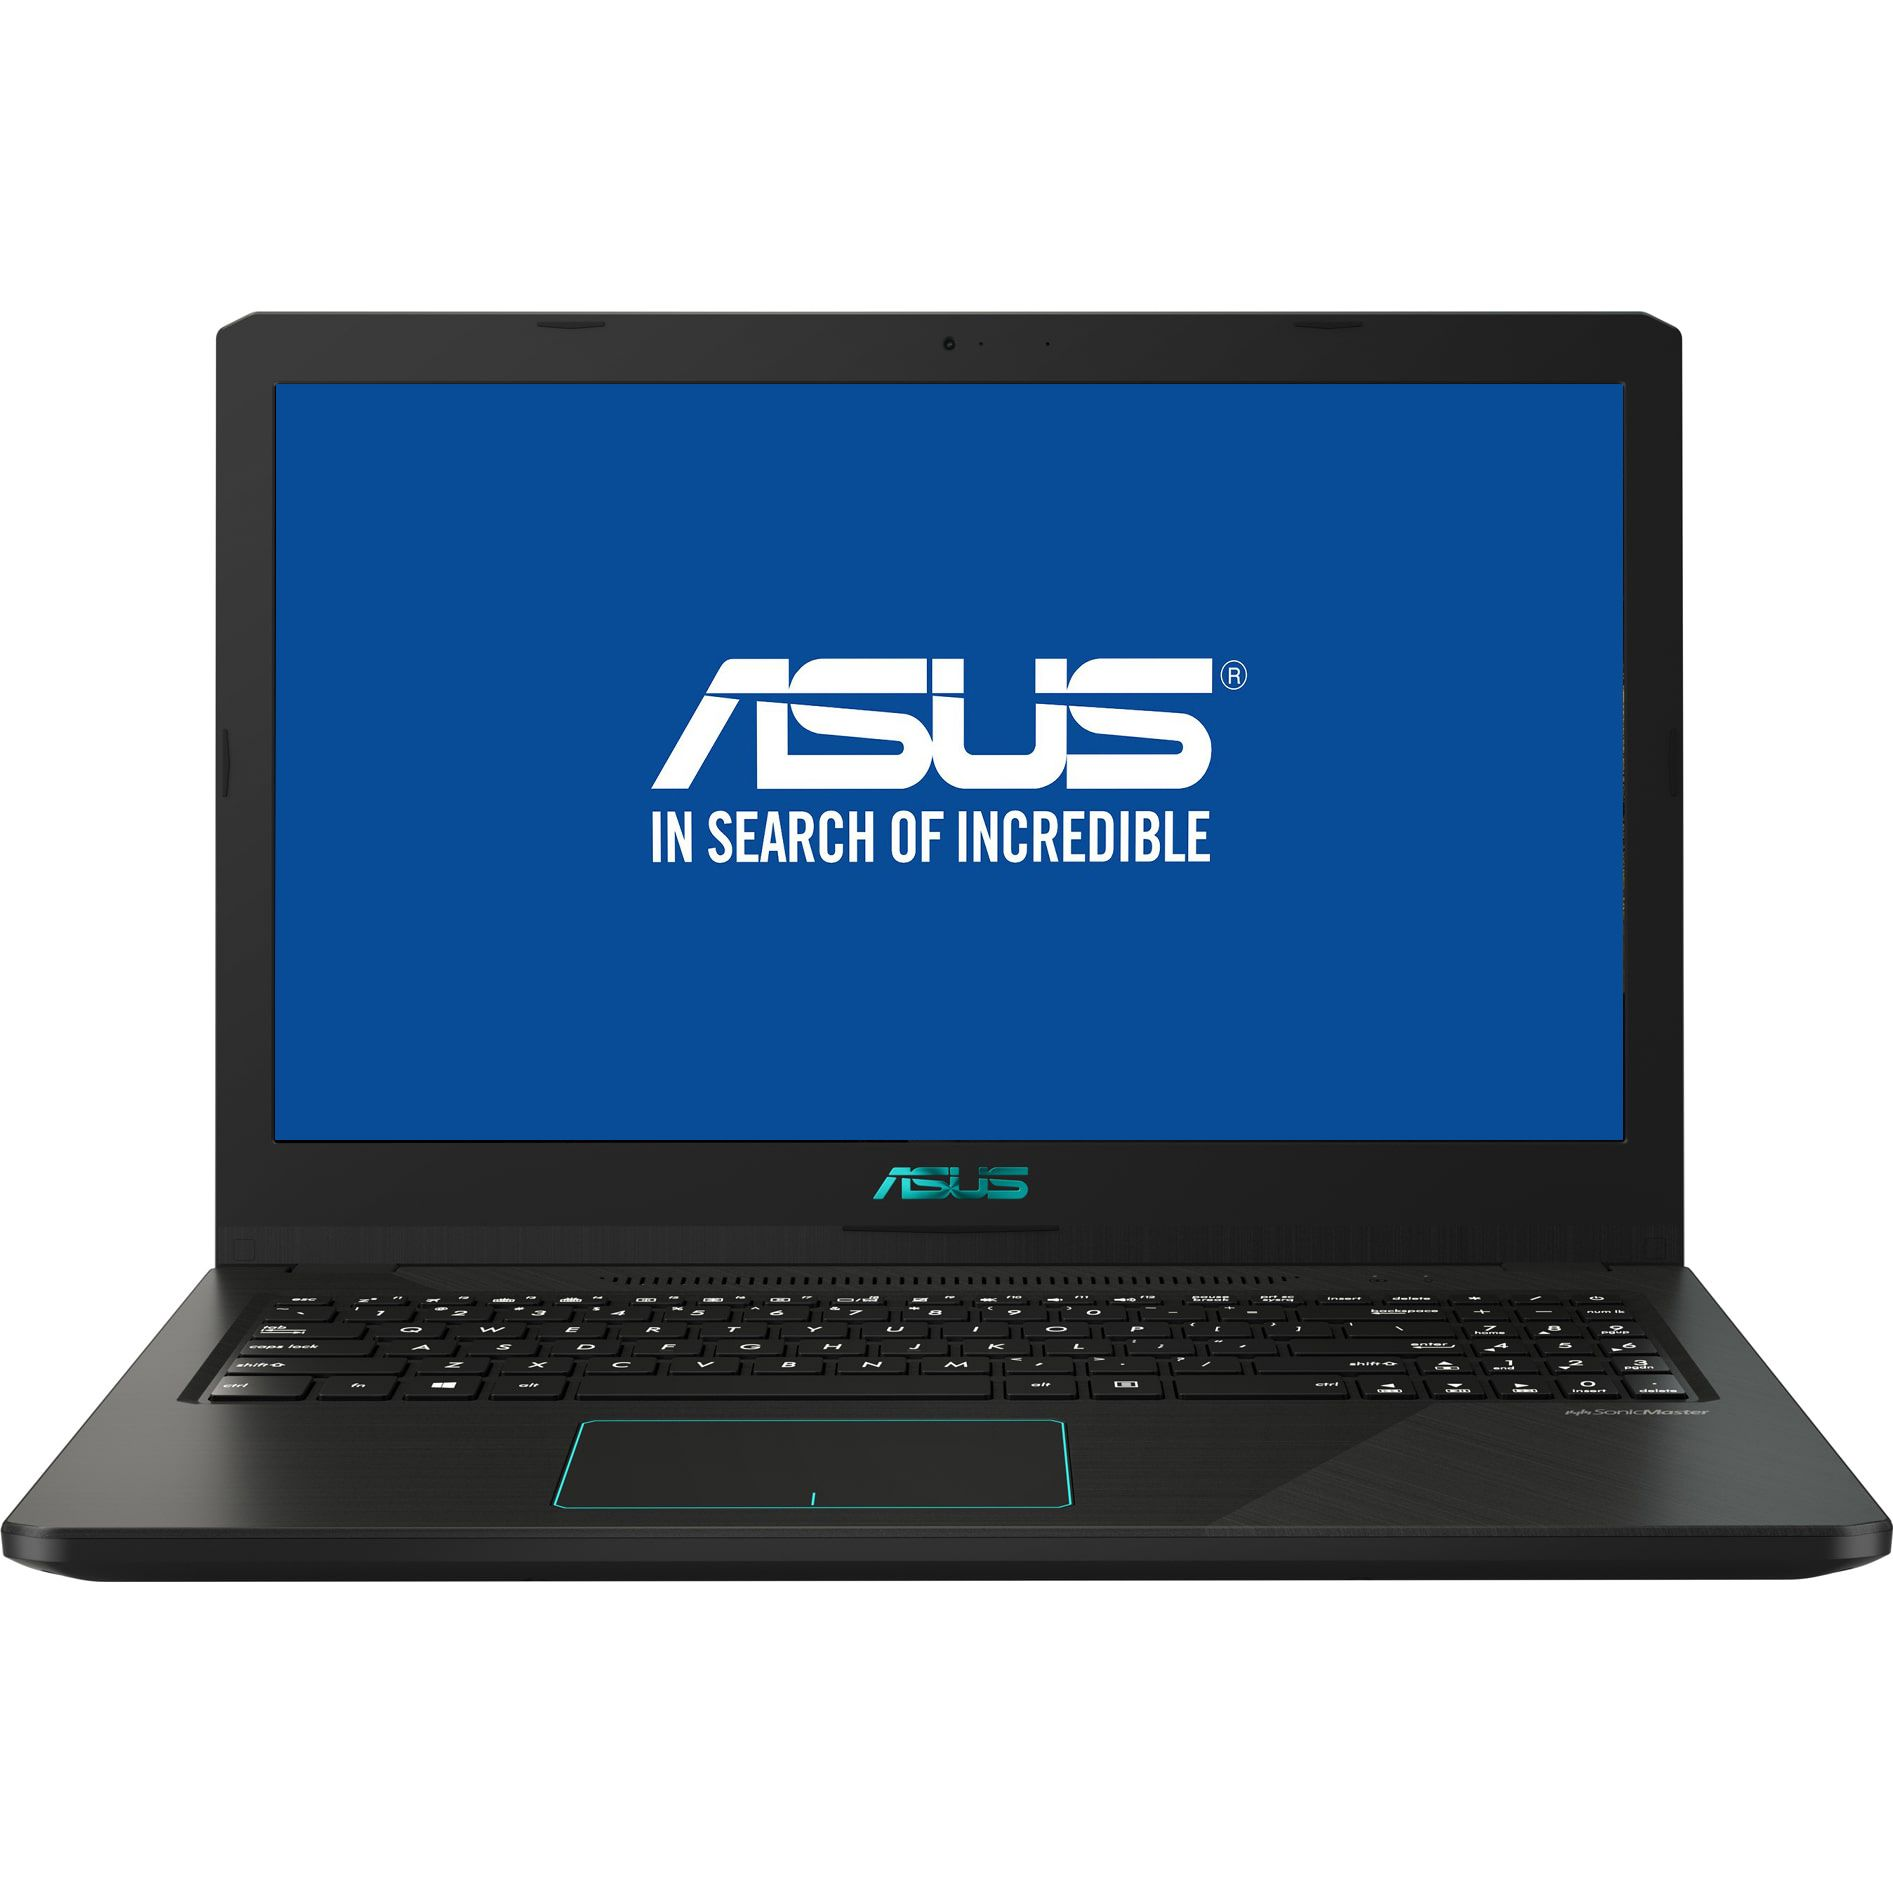 Notebook Asus X570ZD 15.6 Full HD AMD Ryzen R7-2700U GTX 1050-4GB RAM 8GB HDD 1TB Endless OS Negru